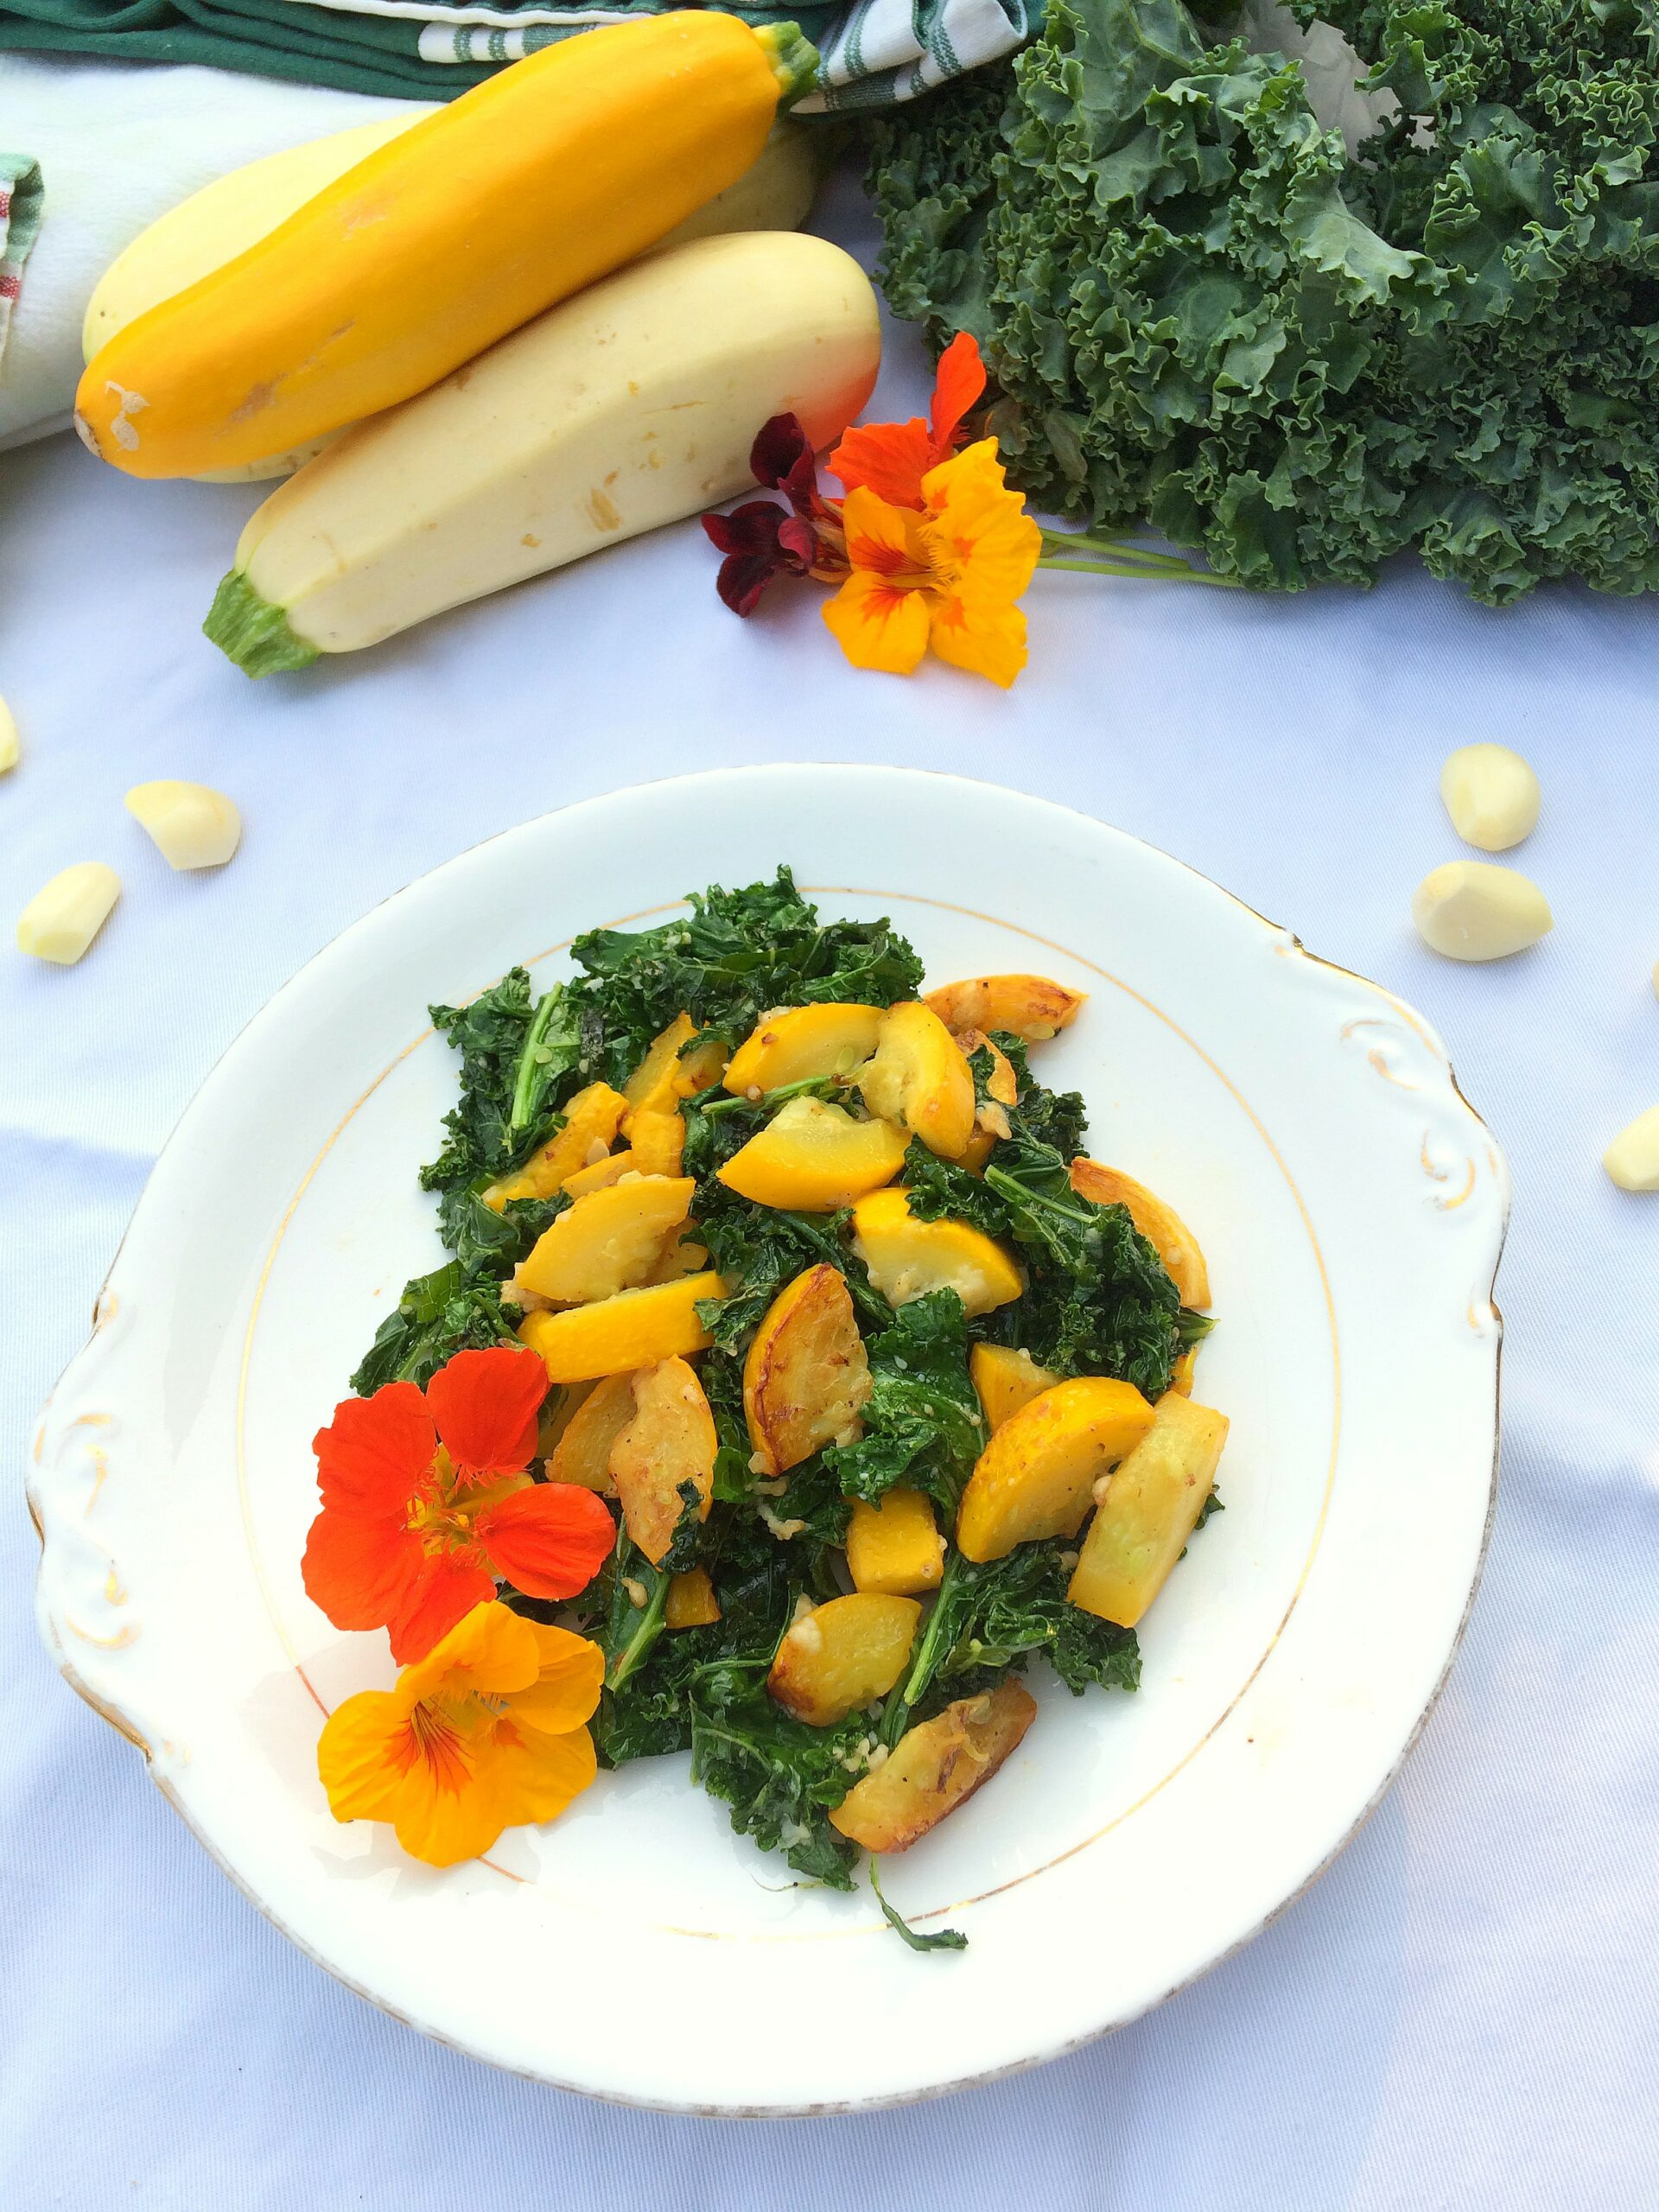 An easy summer side dish recipe to use up your garden produce.  Tender zucchini and crisp kale shine when fried and paired with garlic and parmesan.  So good even your zucchini-hating friends will like it.  Sub in summer squash for a tasty alternative!